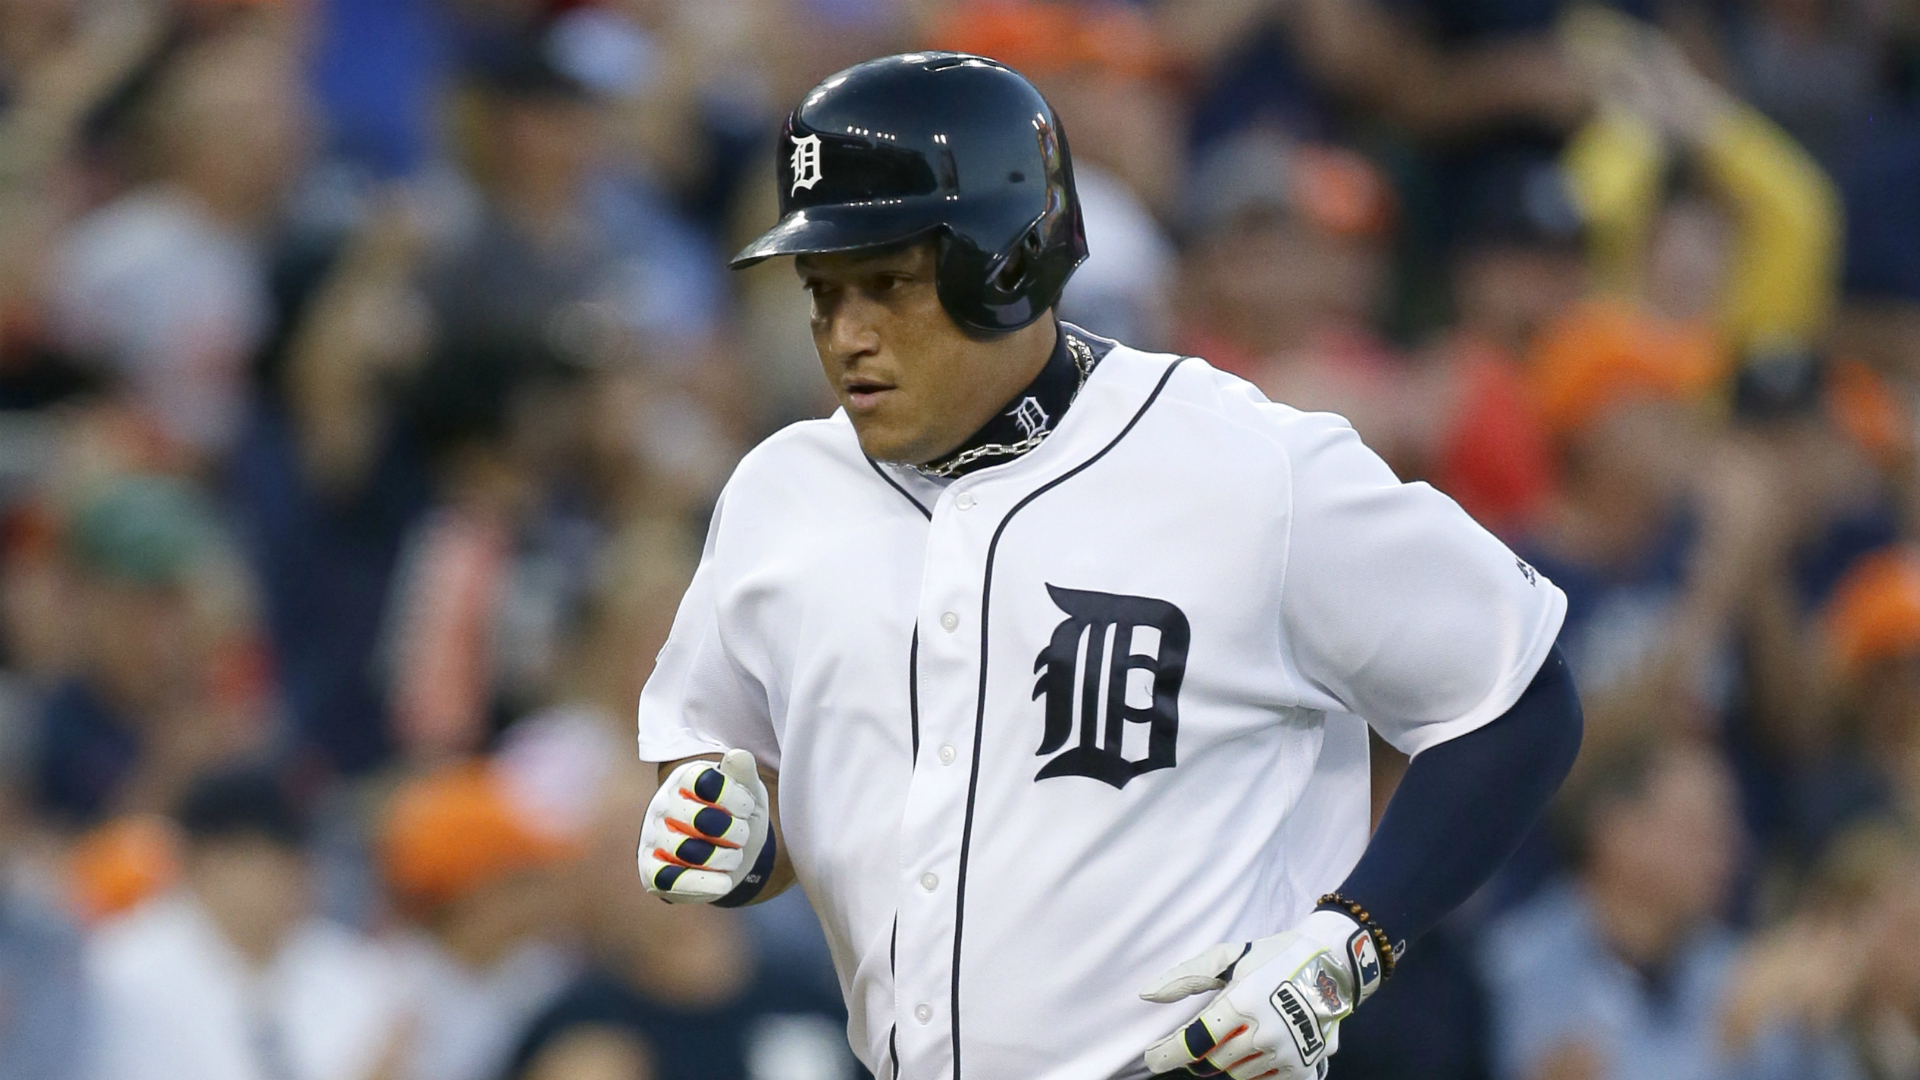 Tigers' Miguel Cabrera 'done playing hurt' | Sporting News